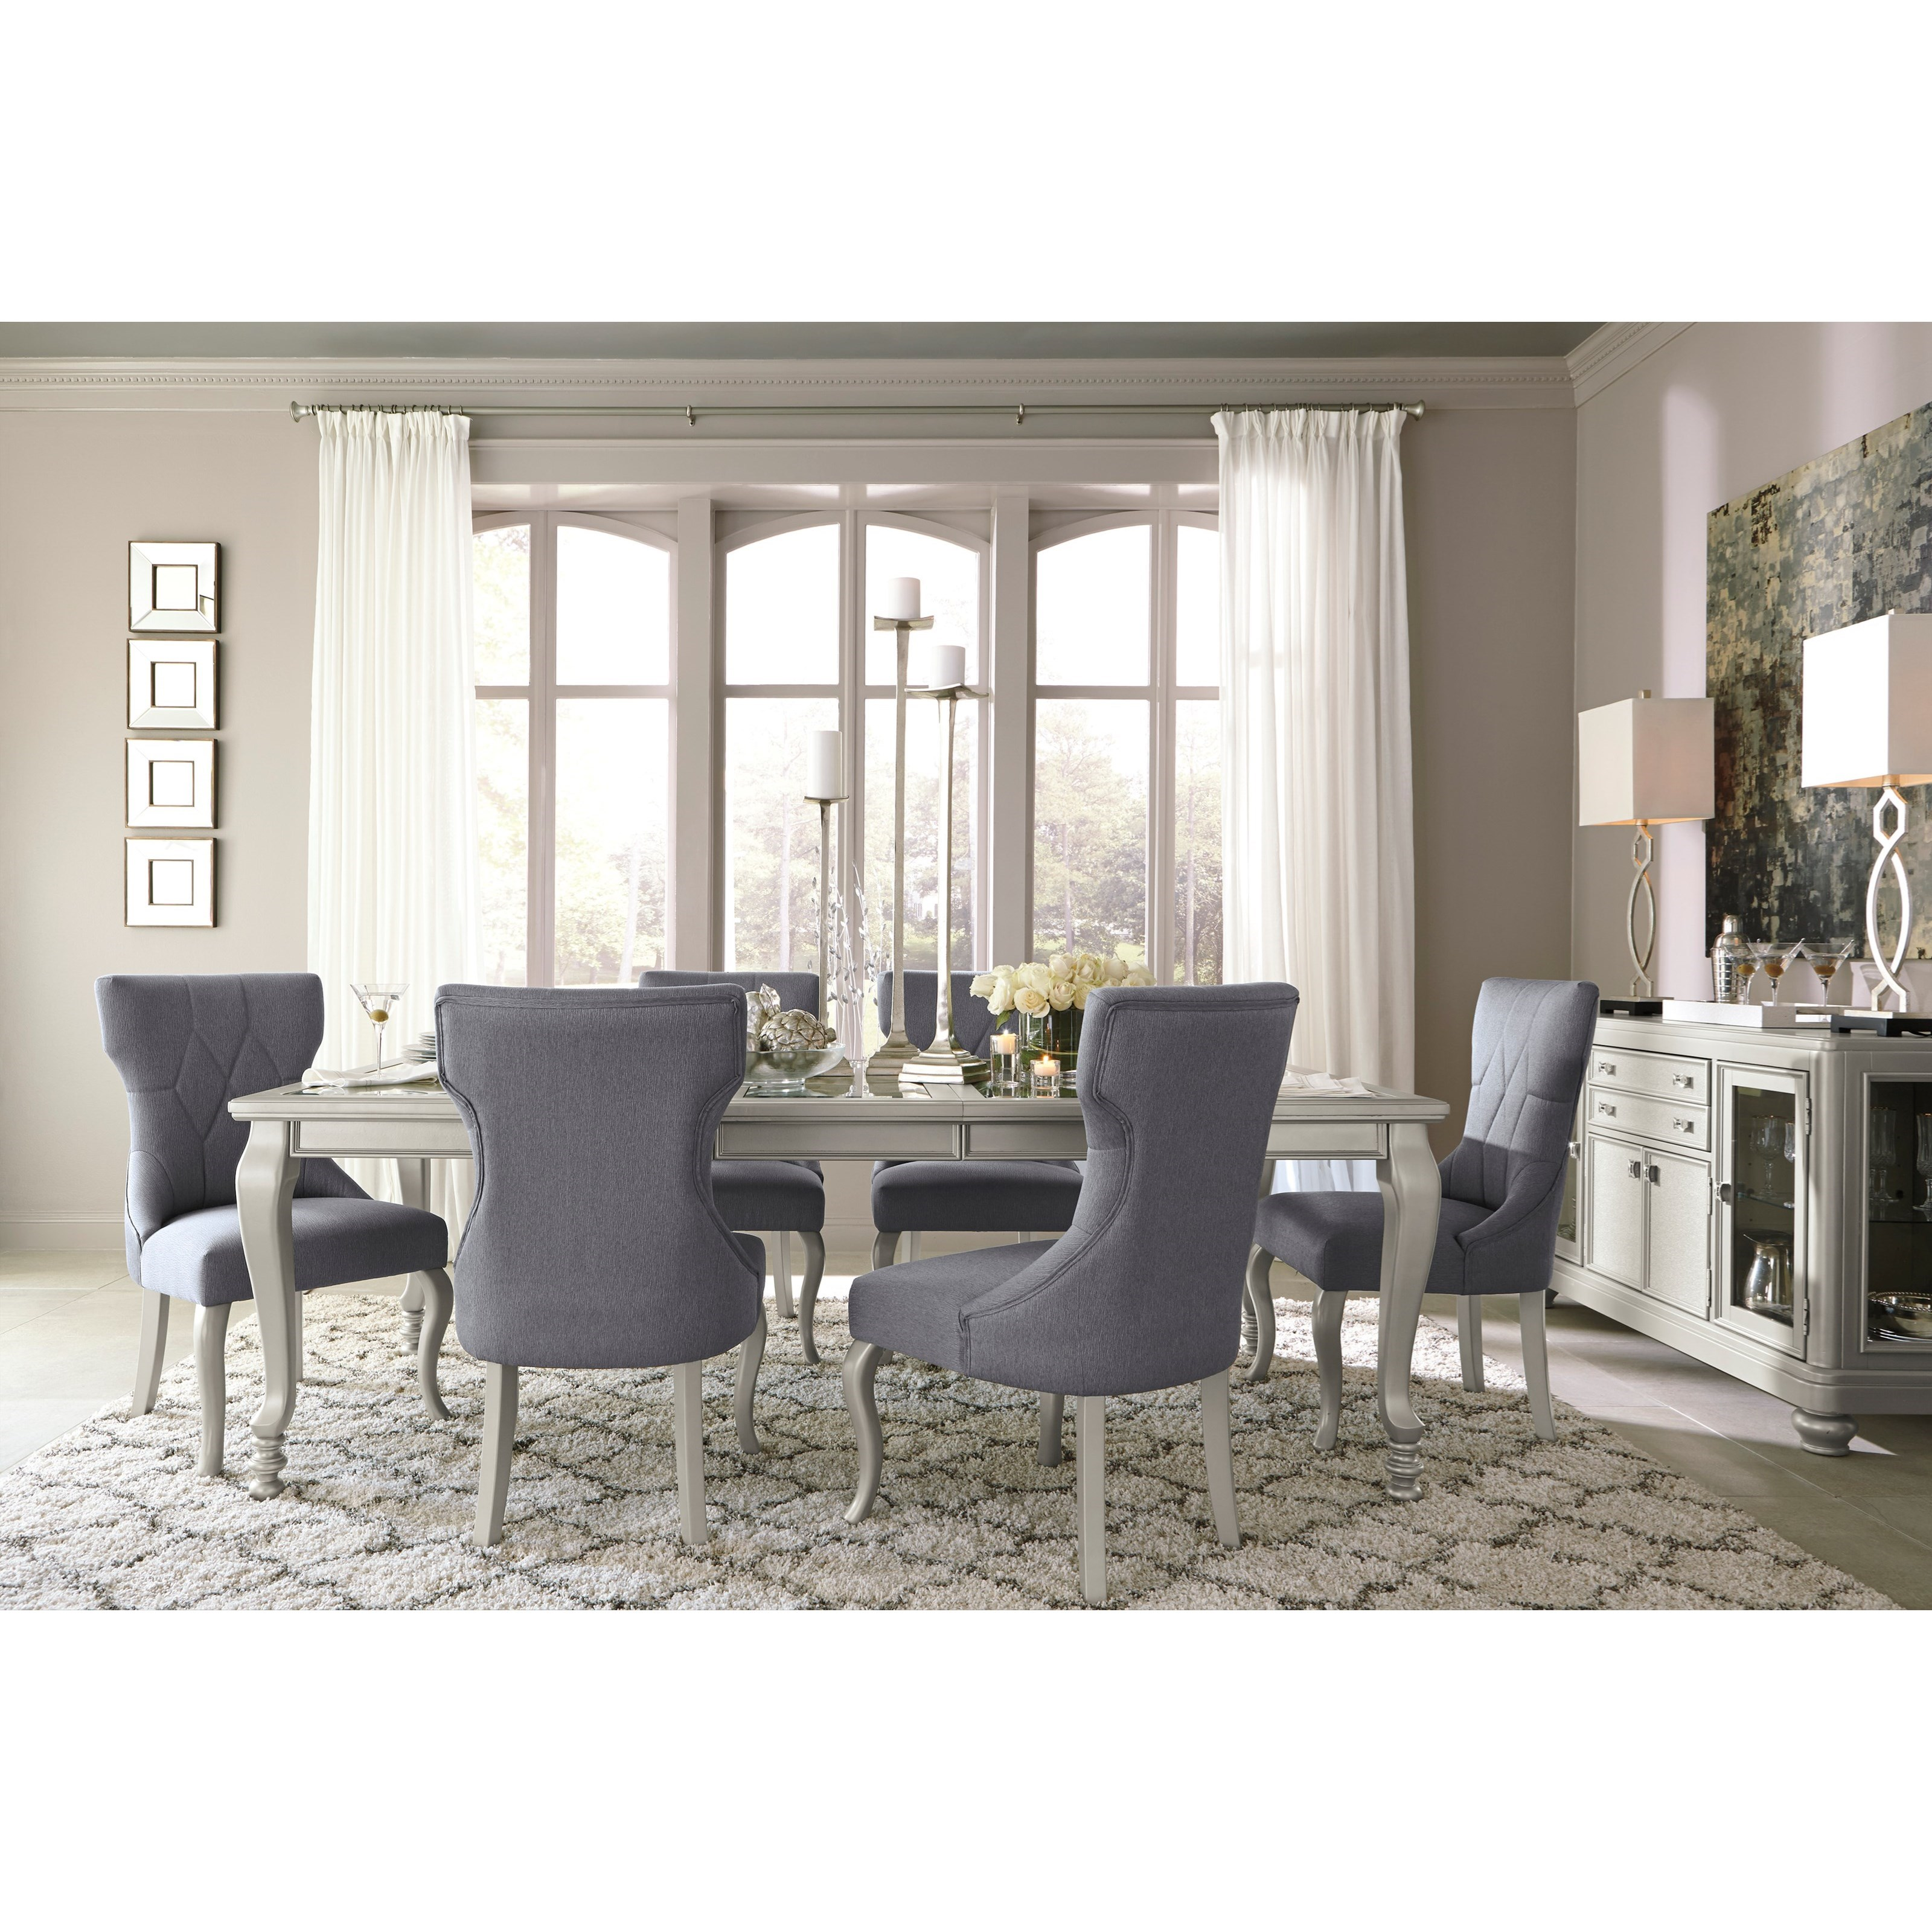 7-Piece Rectangular Dining Room Extension Table Set By